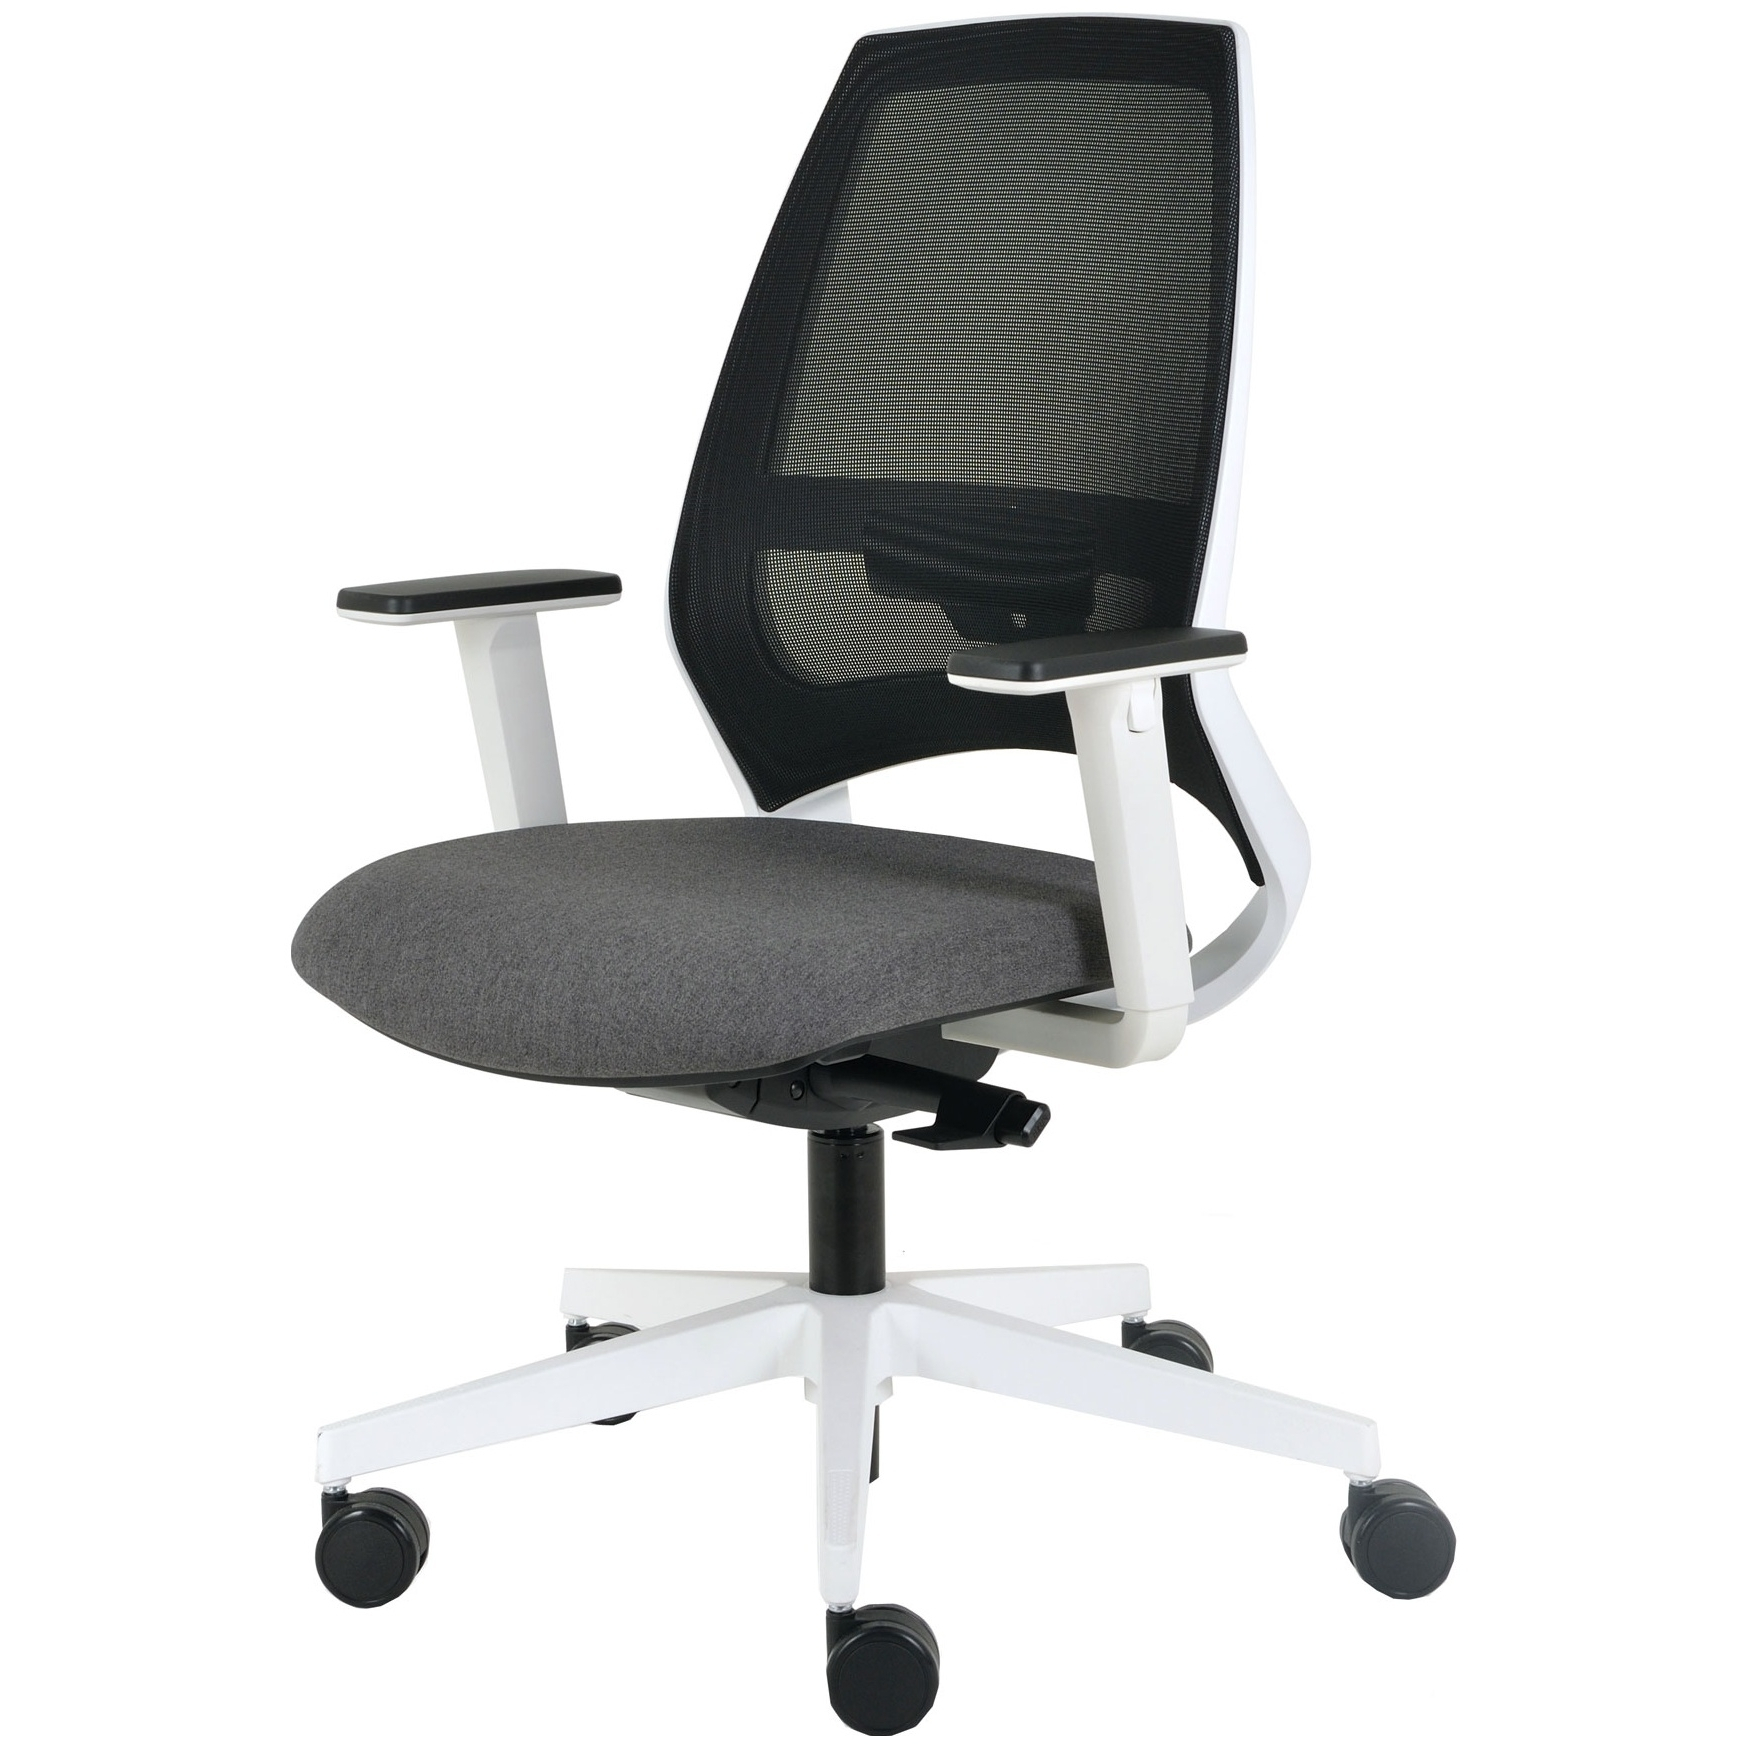 Cheap Attica Plus Mesh Task Chair From Pertaining To Most Up To Date Attica Arm Chairs (View 7 of 20)